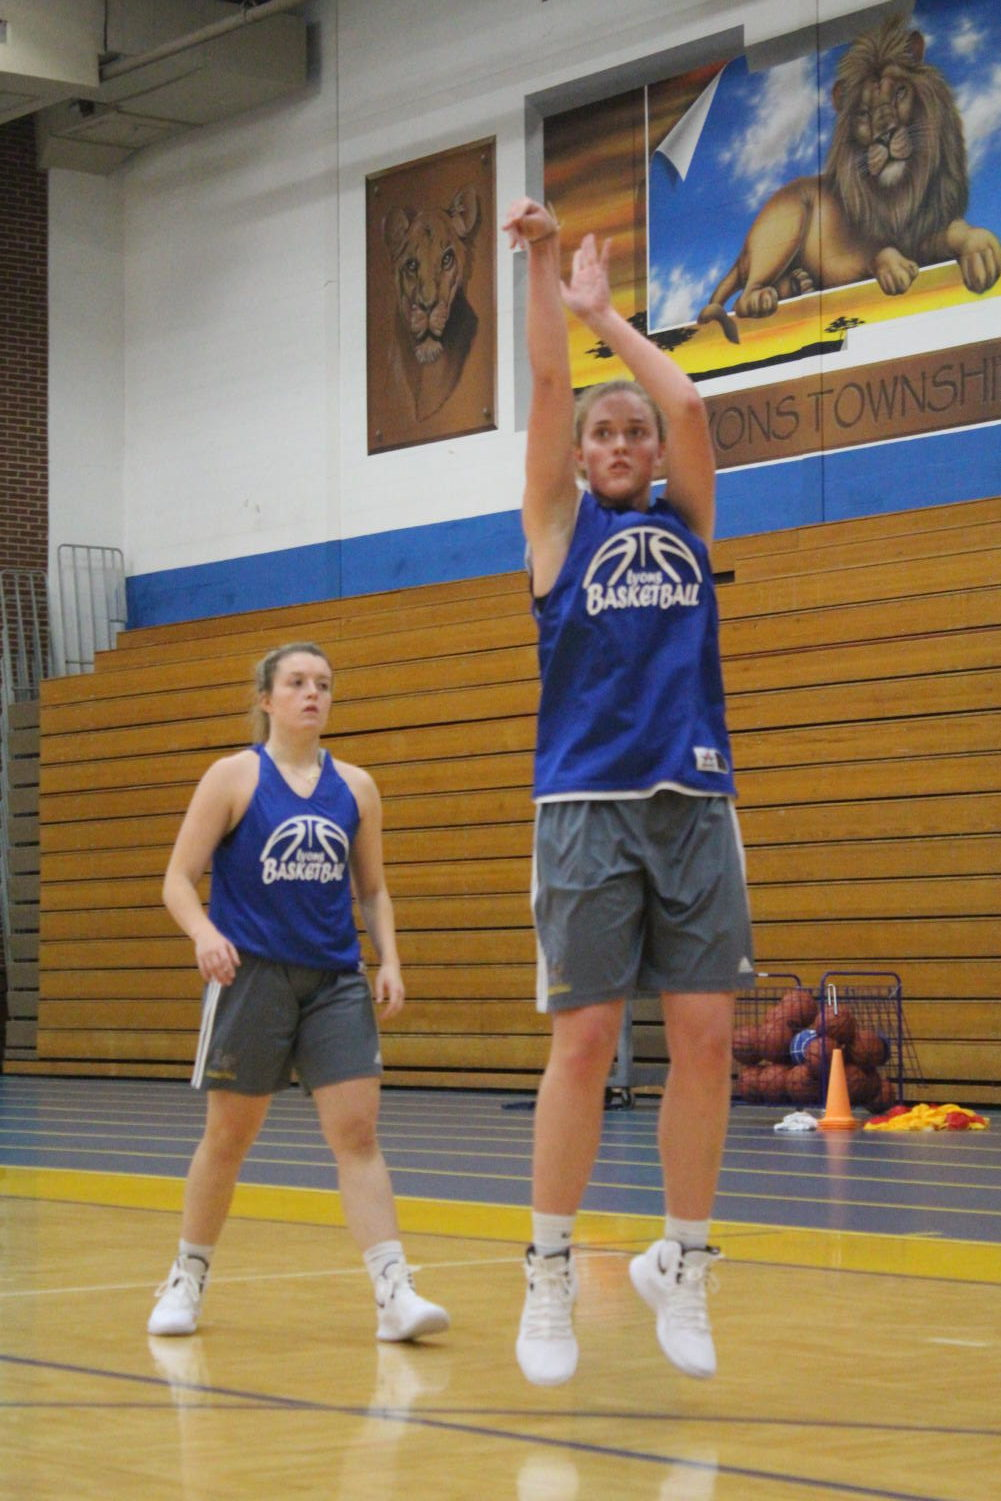 Courier works on her shooting skills at practice (Gremer/LION).